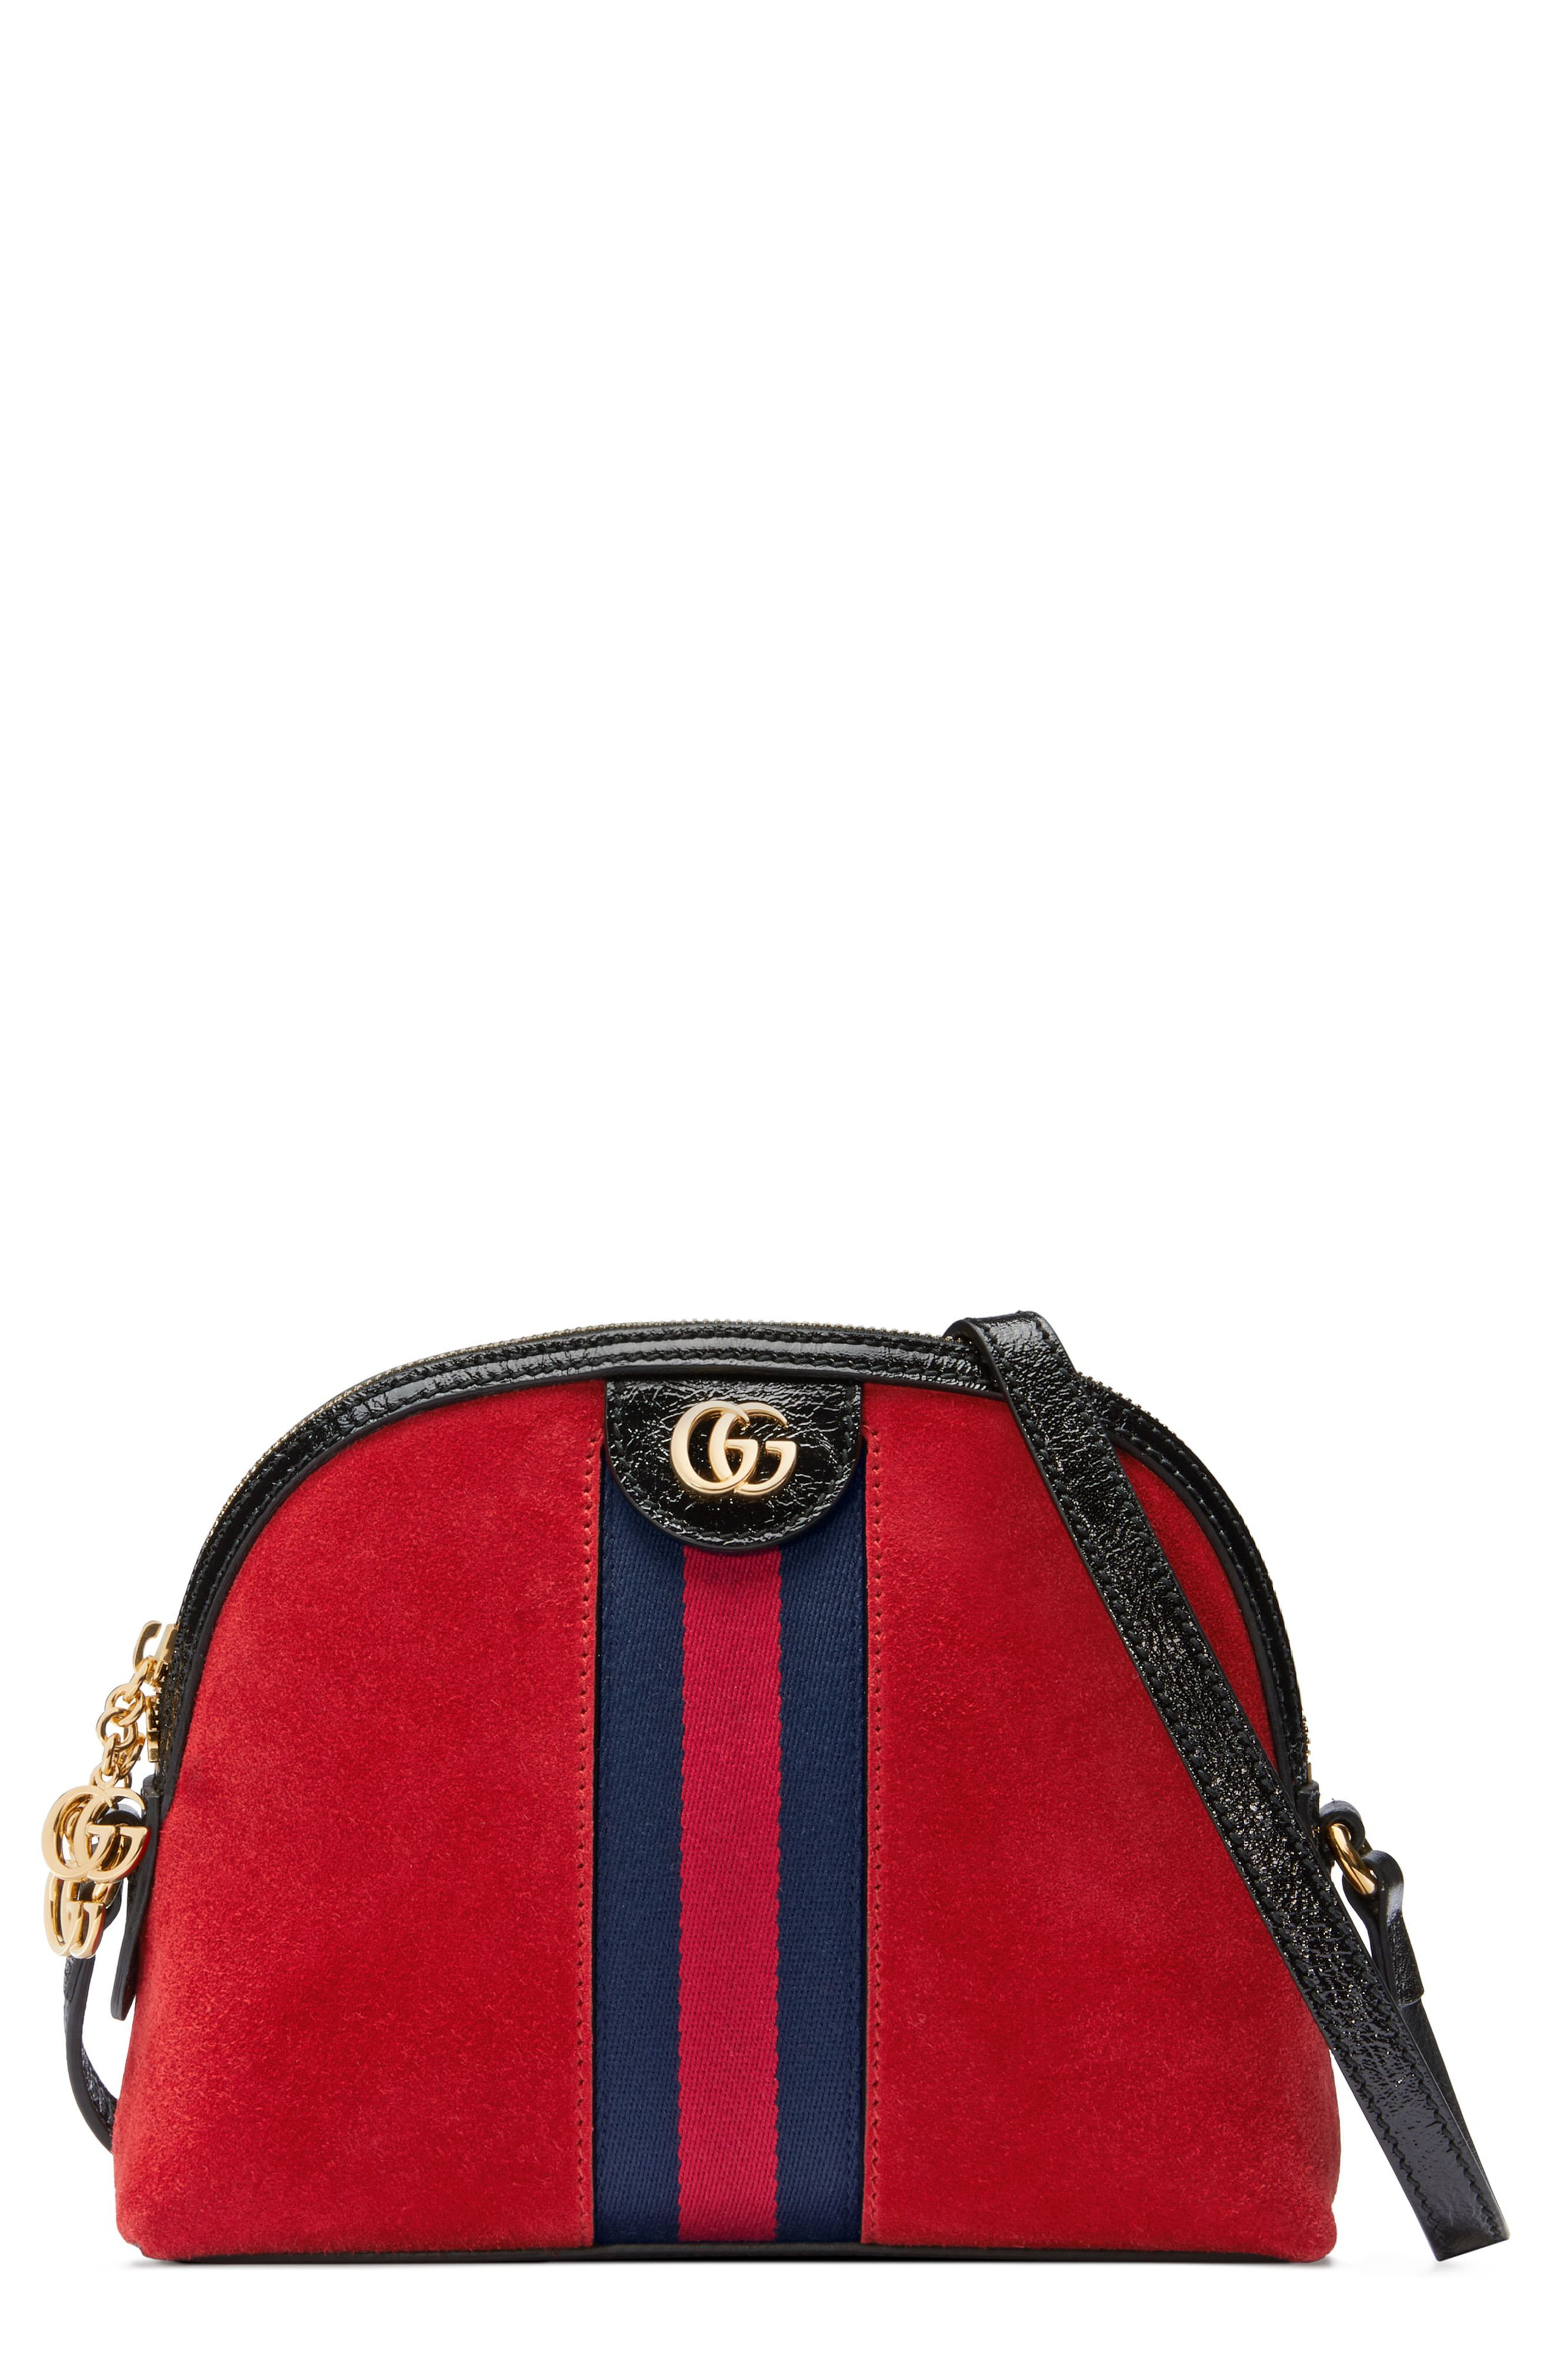 e18bd4a5a5 Gucci Small Suede Shoulder Bag - Red in 2019 | Products | Gucci ...